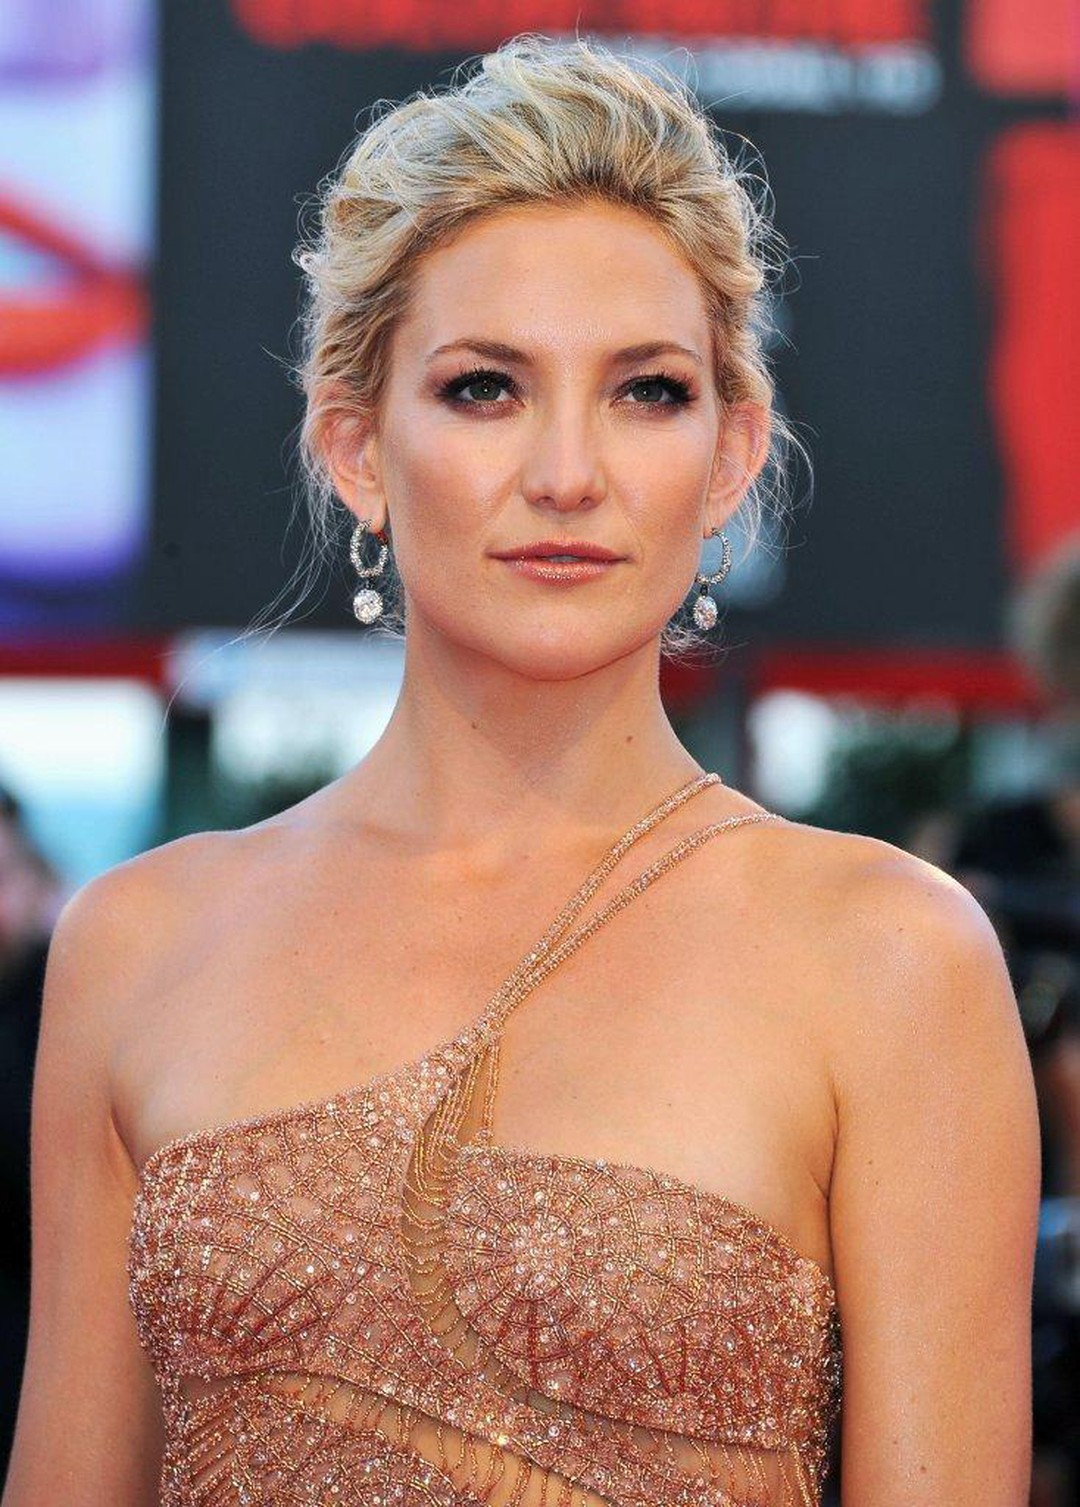 Faberge-Kate-Hudson-in-Faberge-at-Venice-Film-Festival-29.08.12-01.jpg